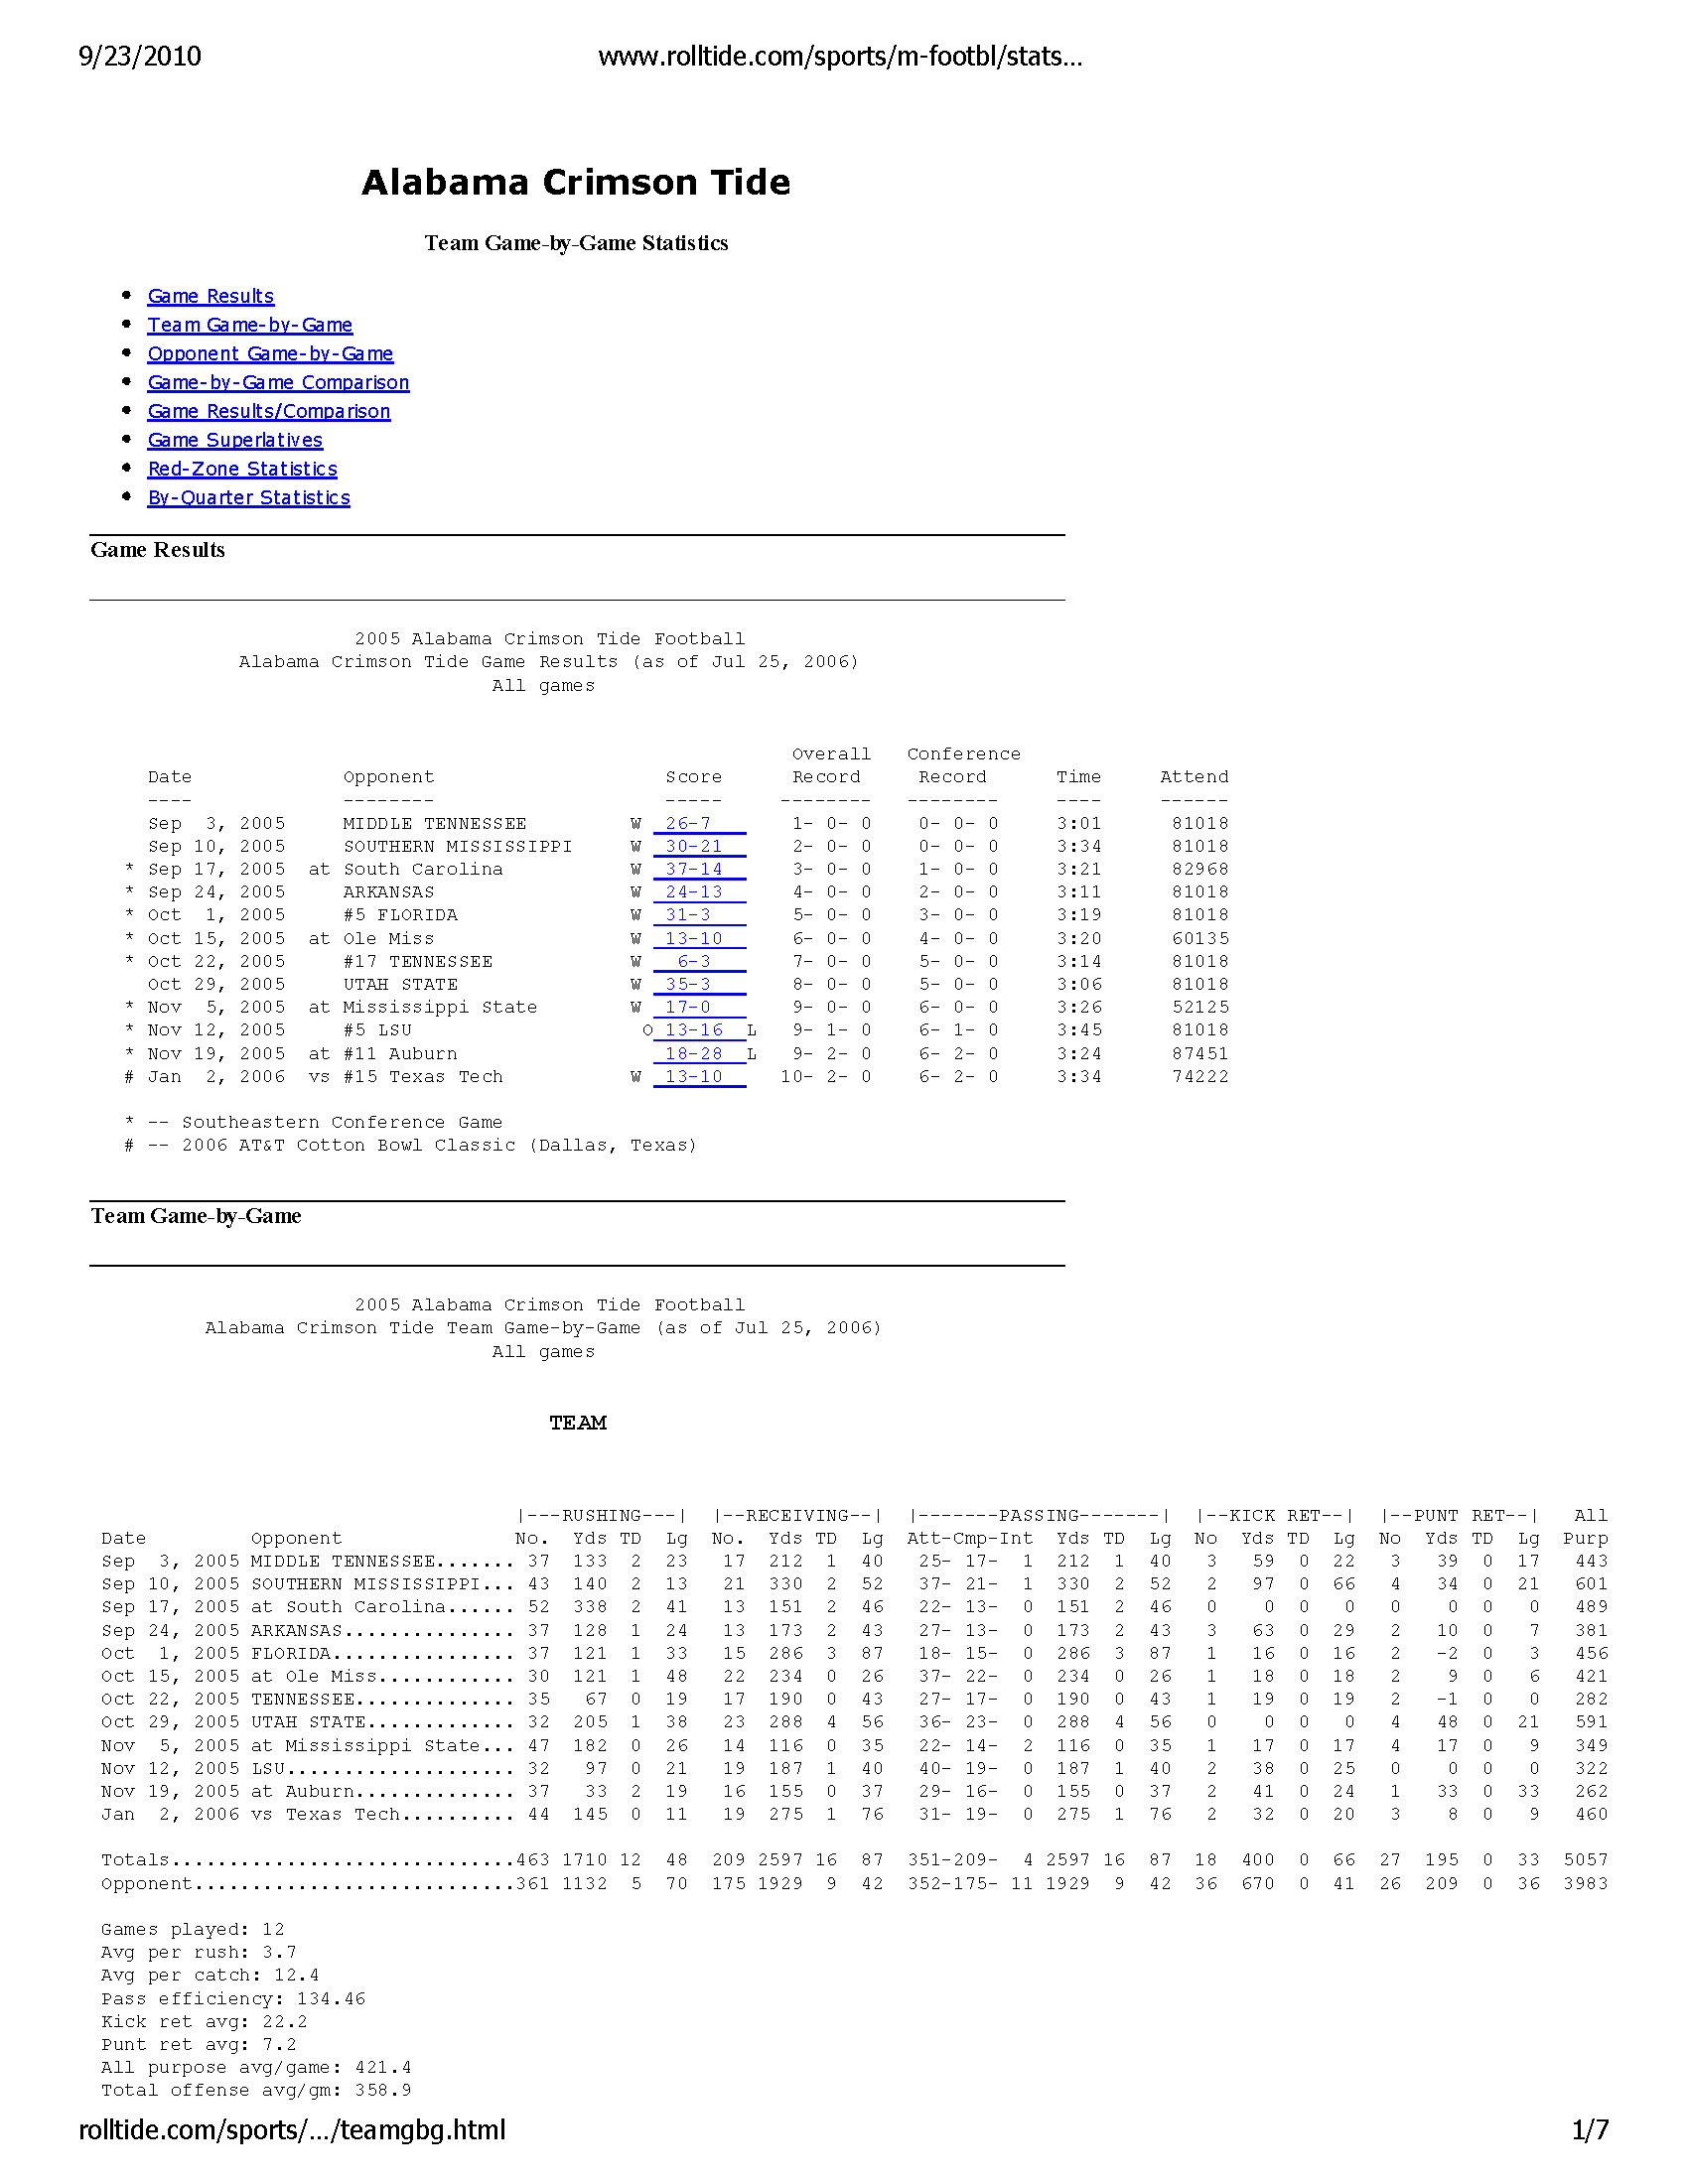 Alabama Crimson Tide -- Game by Game Statistics -- Archive 2005-06_Page_1